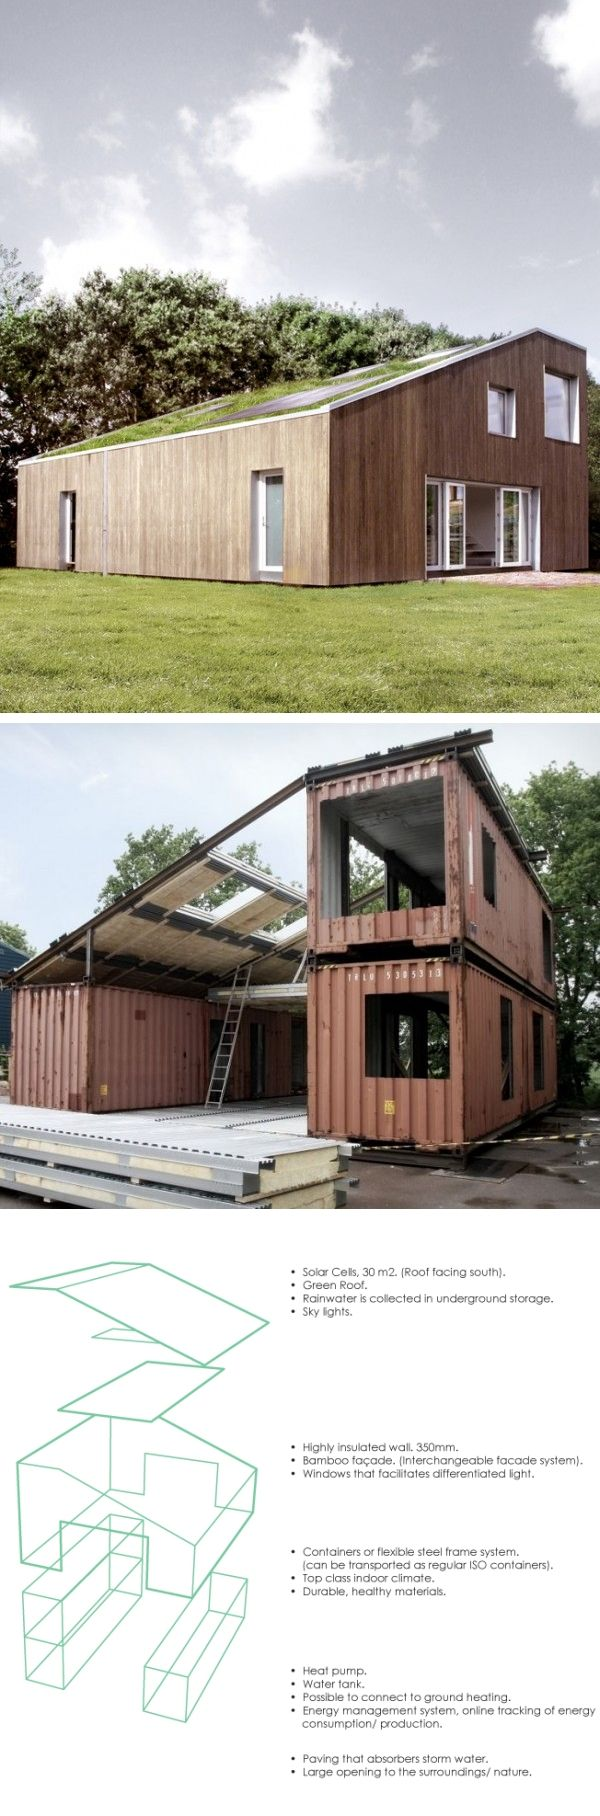 And undercover outdoor areas another shipping container home this provides less natural light but would make  cheap easily constructed farm house also diane keaton keatondiane on pinterest rh